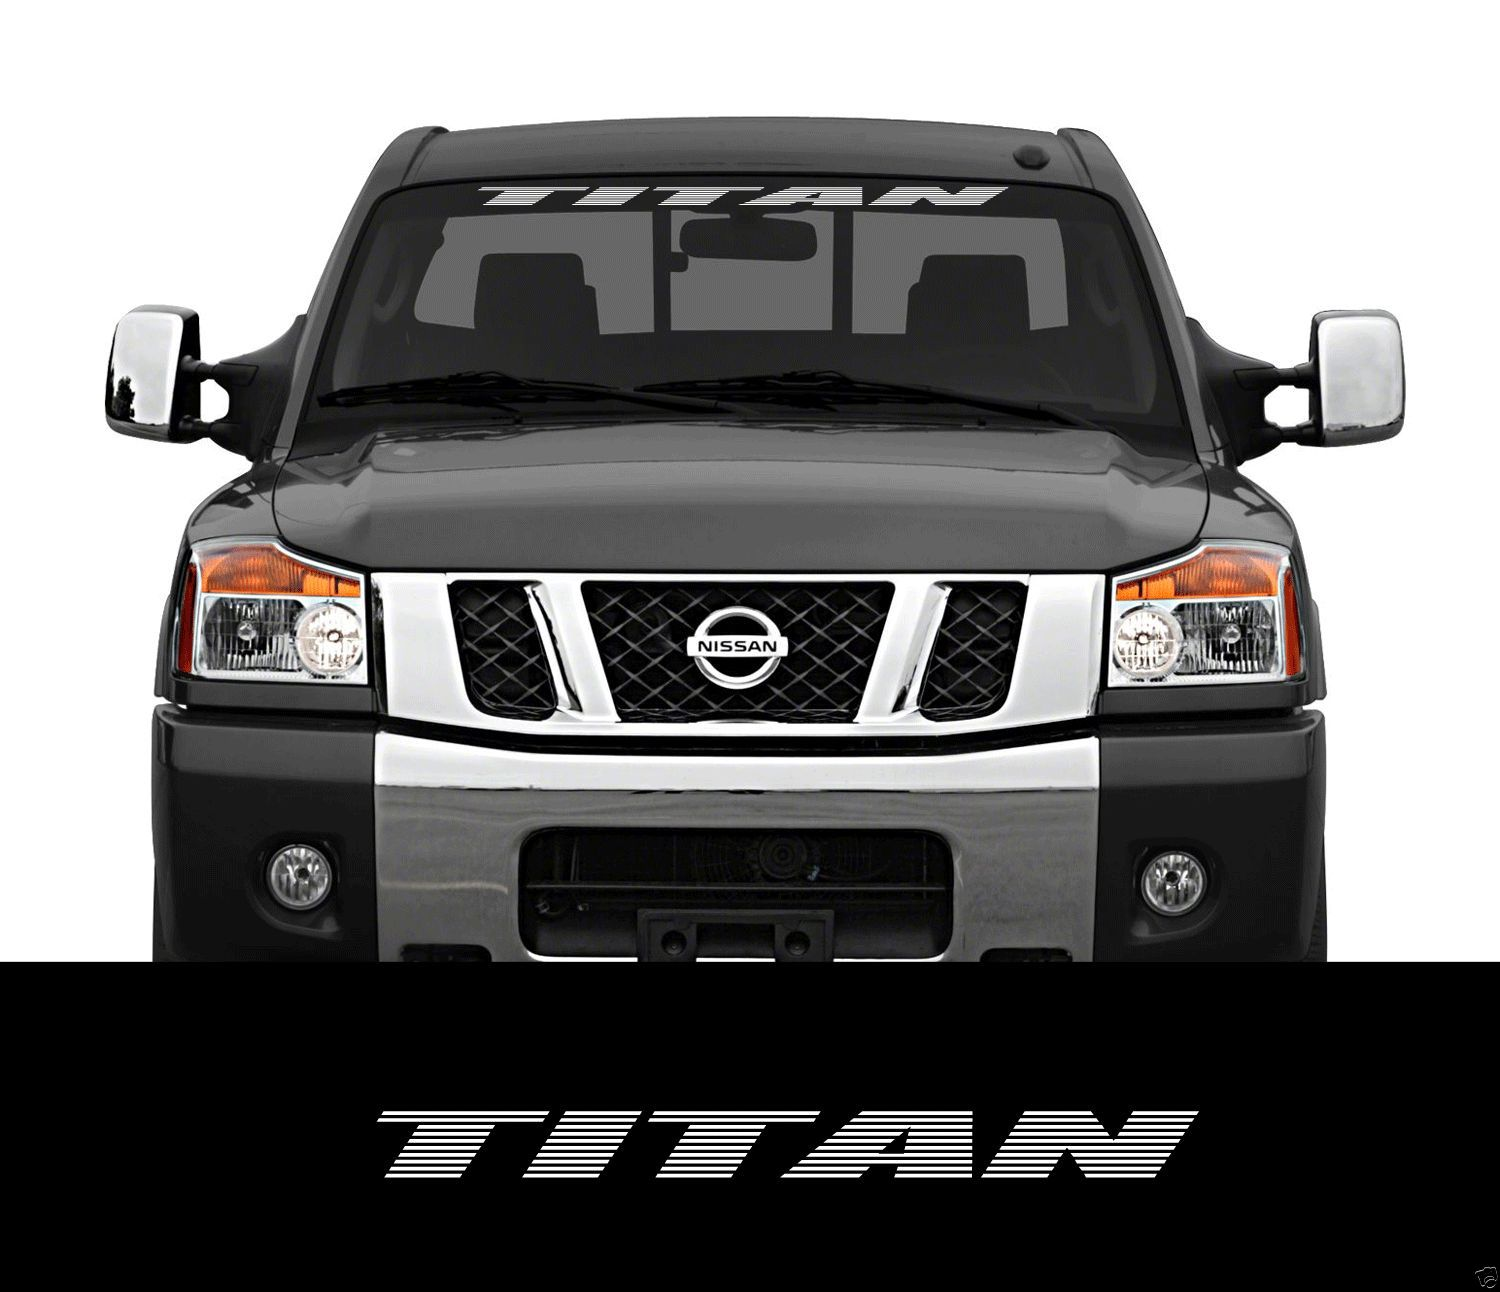 Product TITAN Nissan Front Windshield Window Banner Decal Sticker - Front window stickers for car